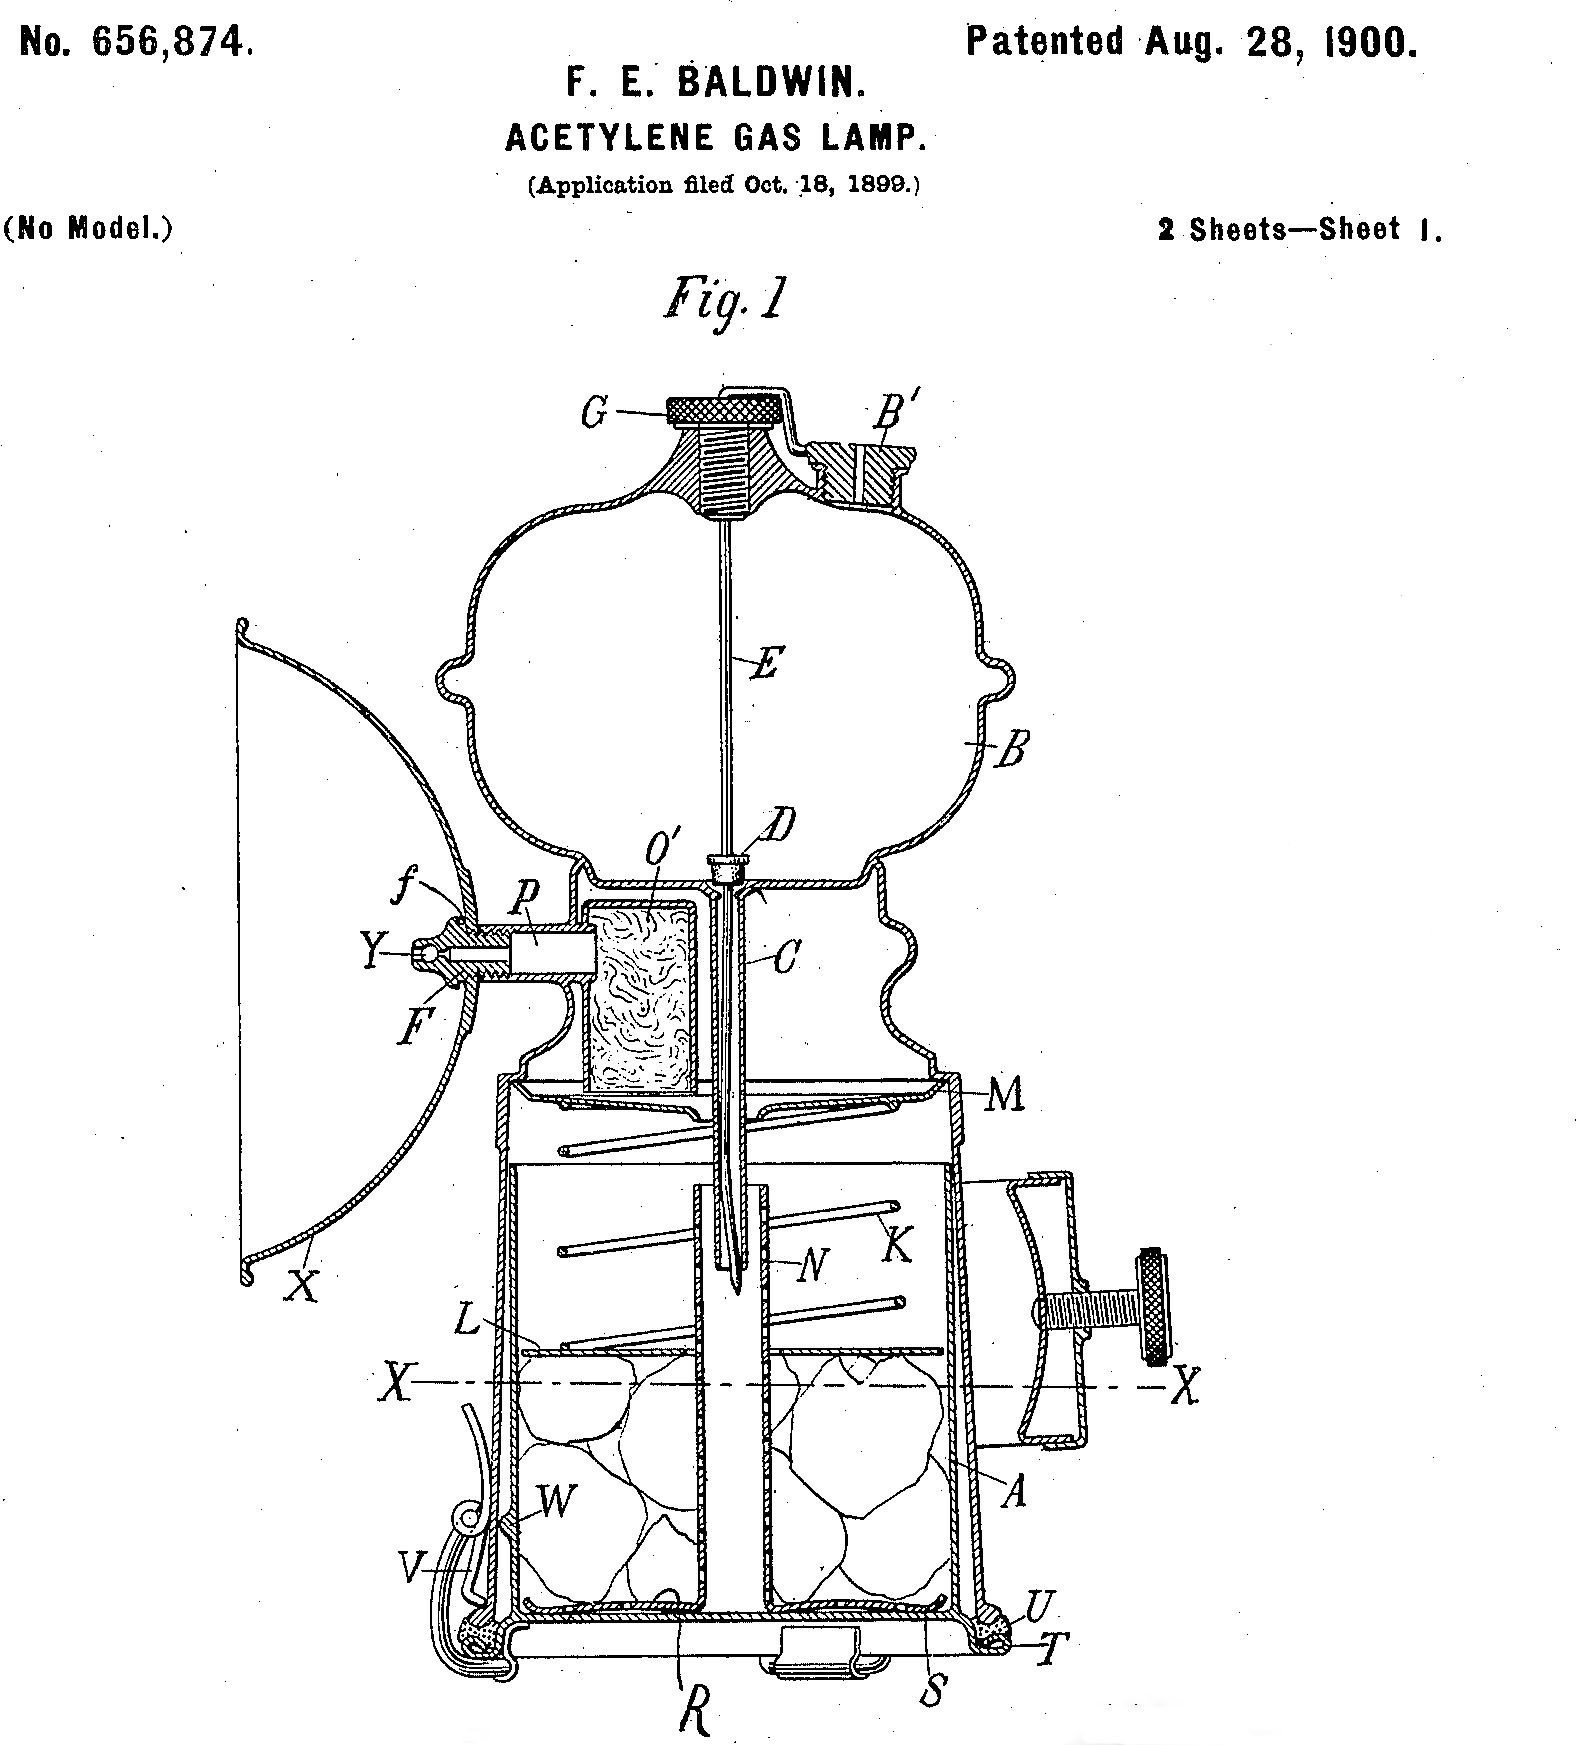 Charming Frederick Baldwinu0027s Patent Drawing For An Acetylene Gas Lamp